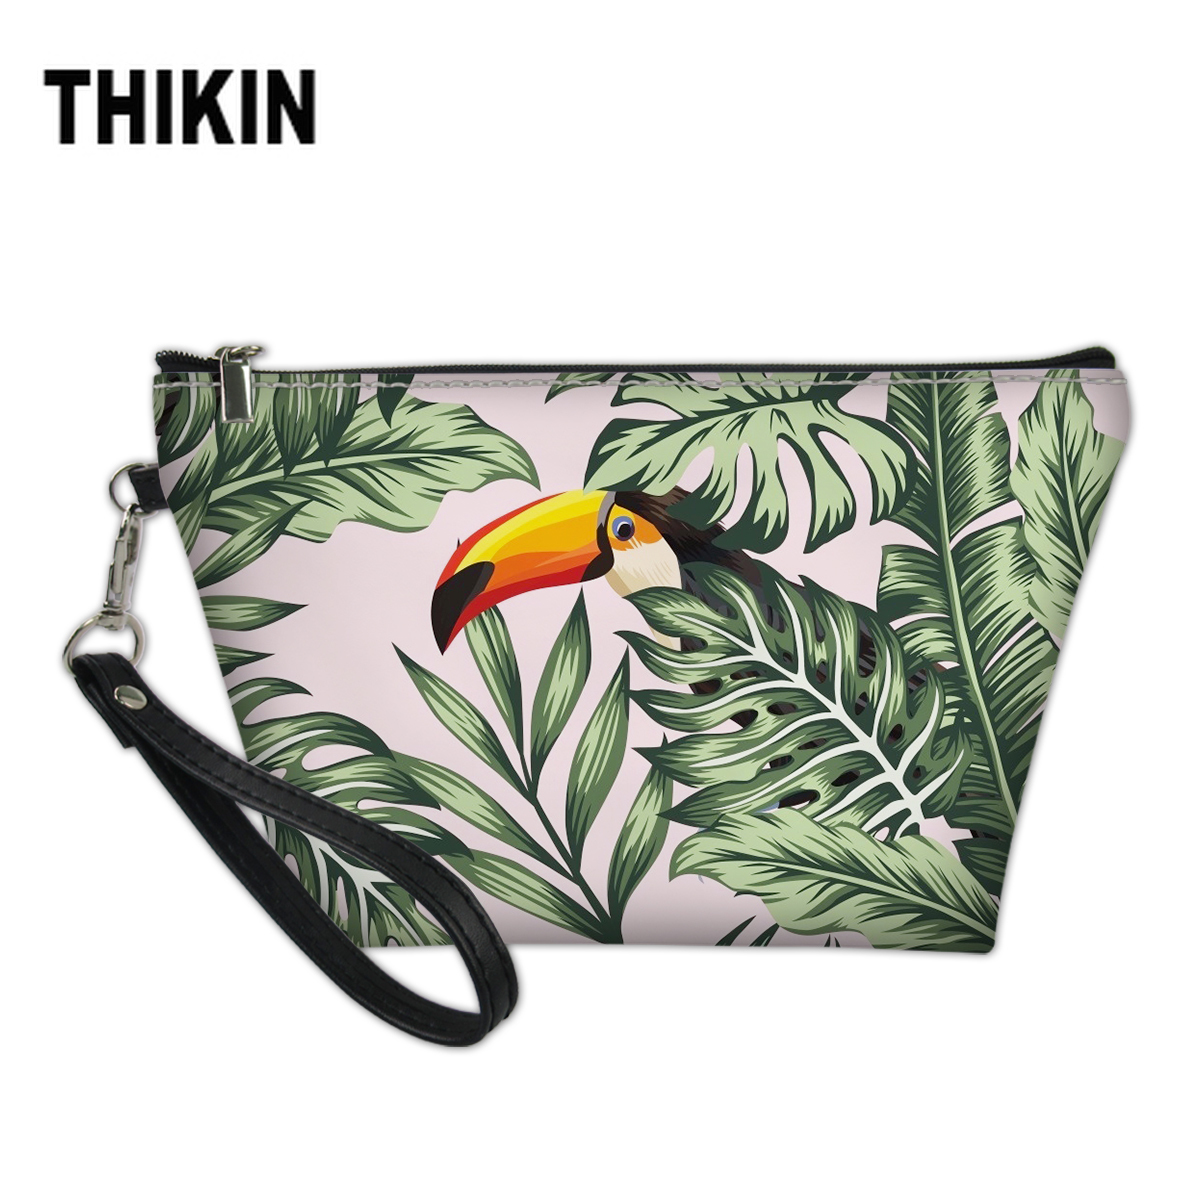 THIKIN Hot Summer Hawaii Plam Tree Printing Cosmetic Bag For Make Up Beauty Pouch Waterproof Makeup Suitcase Cosmetiquero Mujer